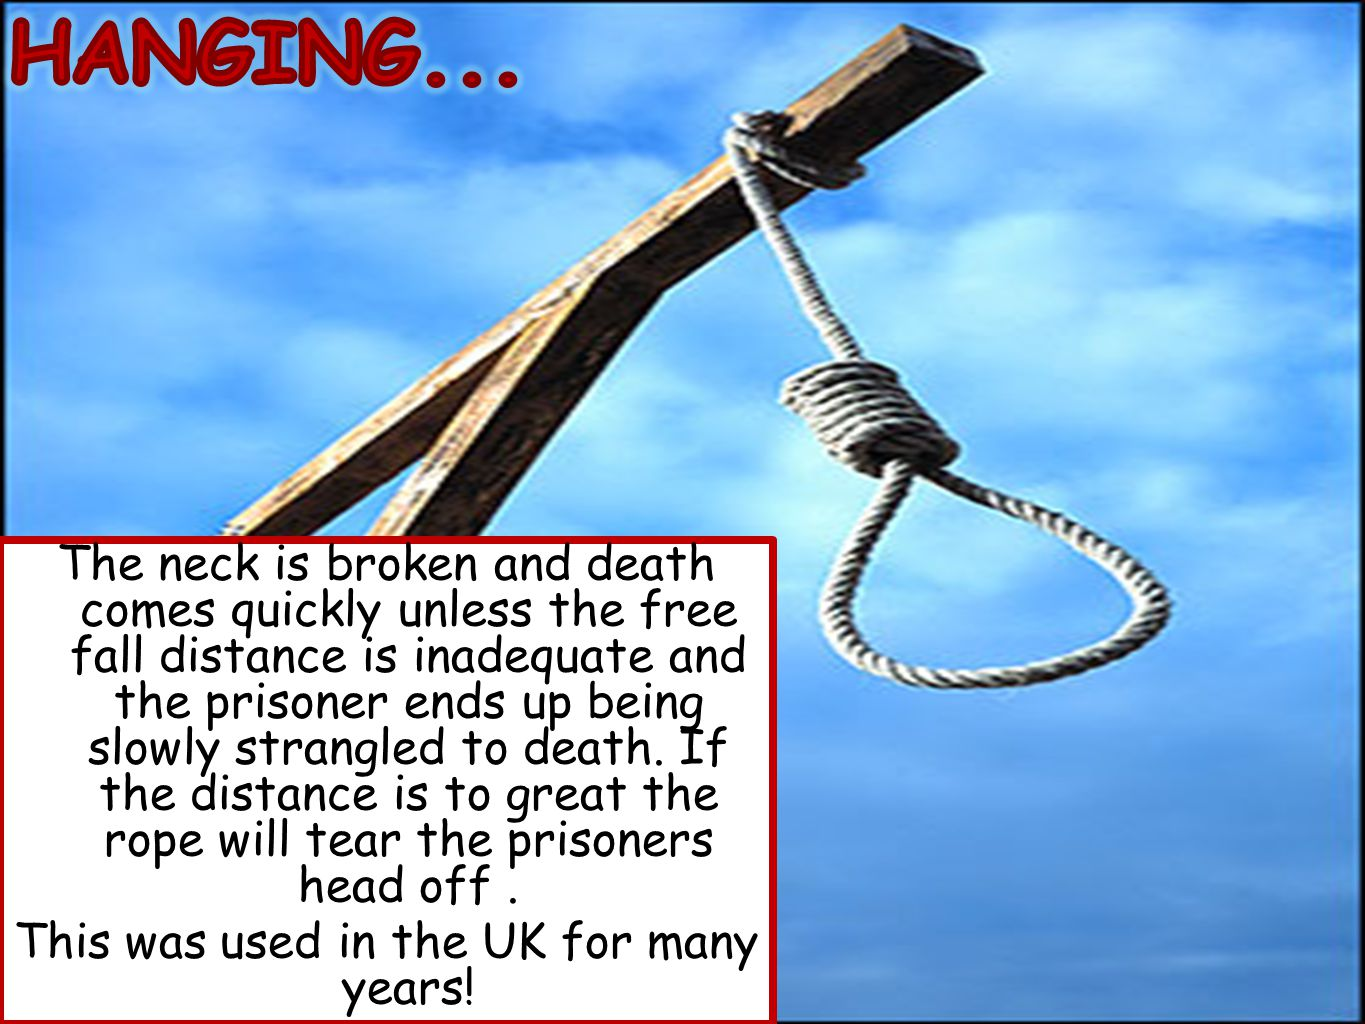 The neck is broken and death comes quickly unless the free fall distance is inadequate and the prisoner ends up being slowly strangled to death.